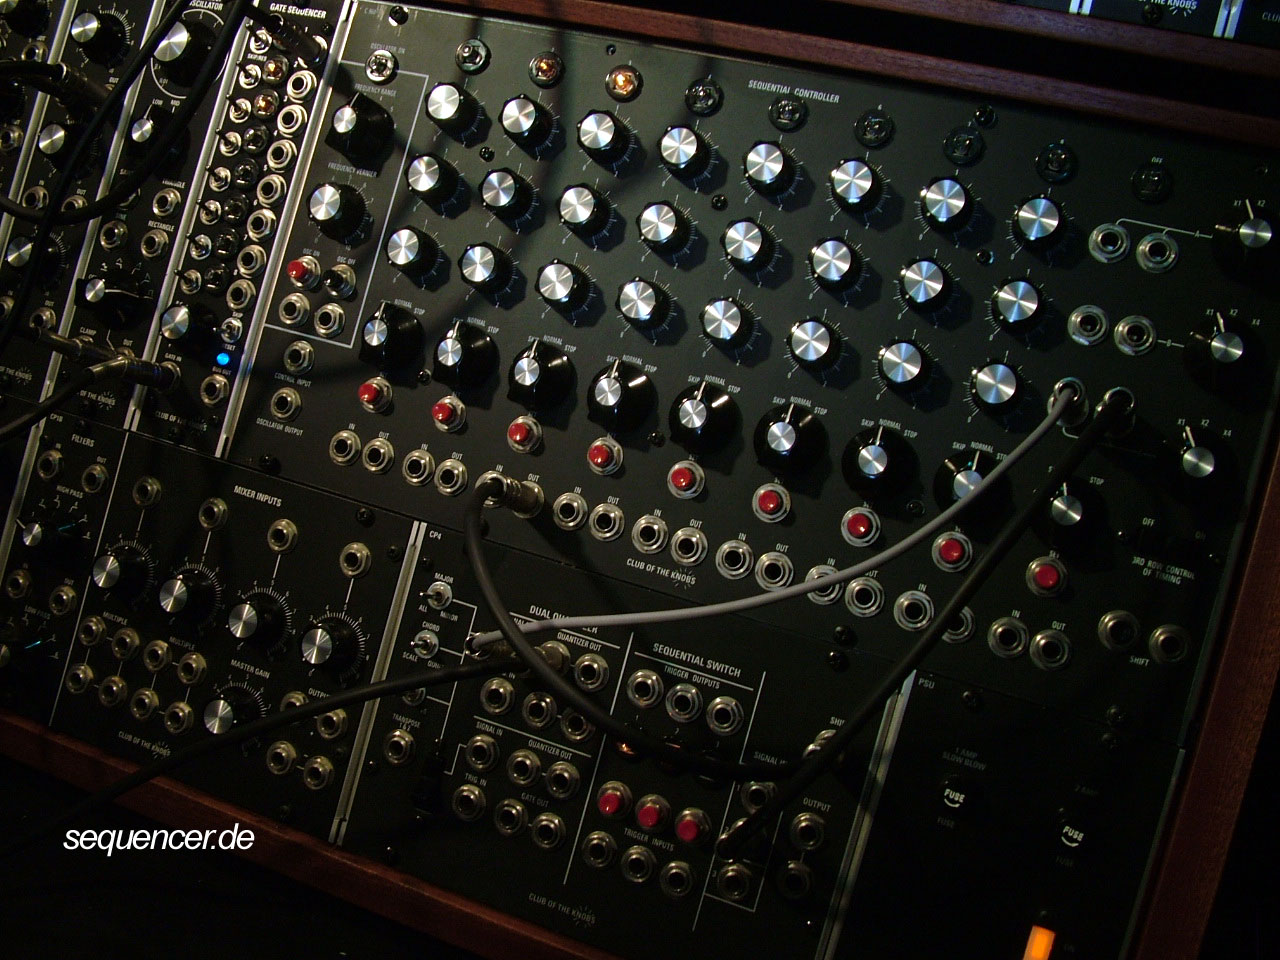 club of the knobs modular modular synthesizer analog step sequencer. Black Bedroom Furniture Sets. Home Design Ideas